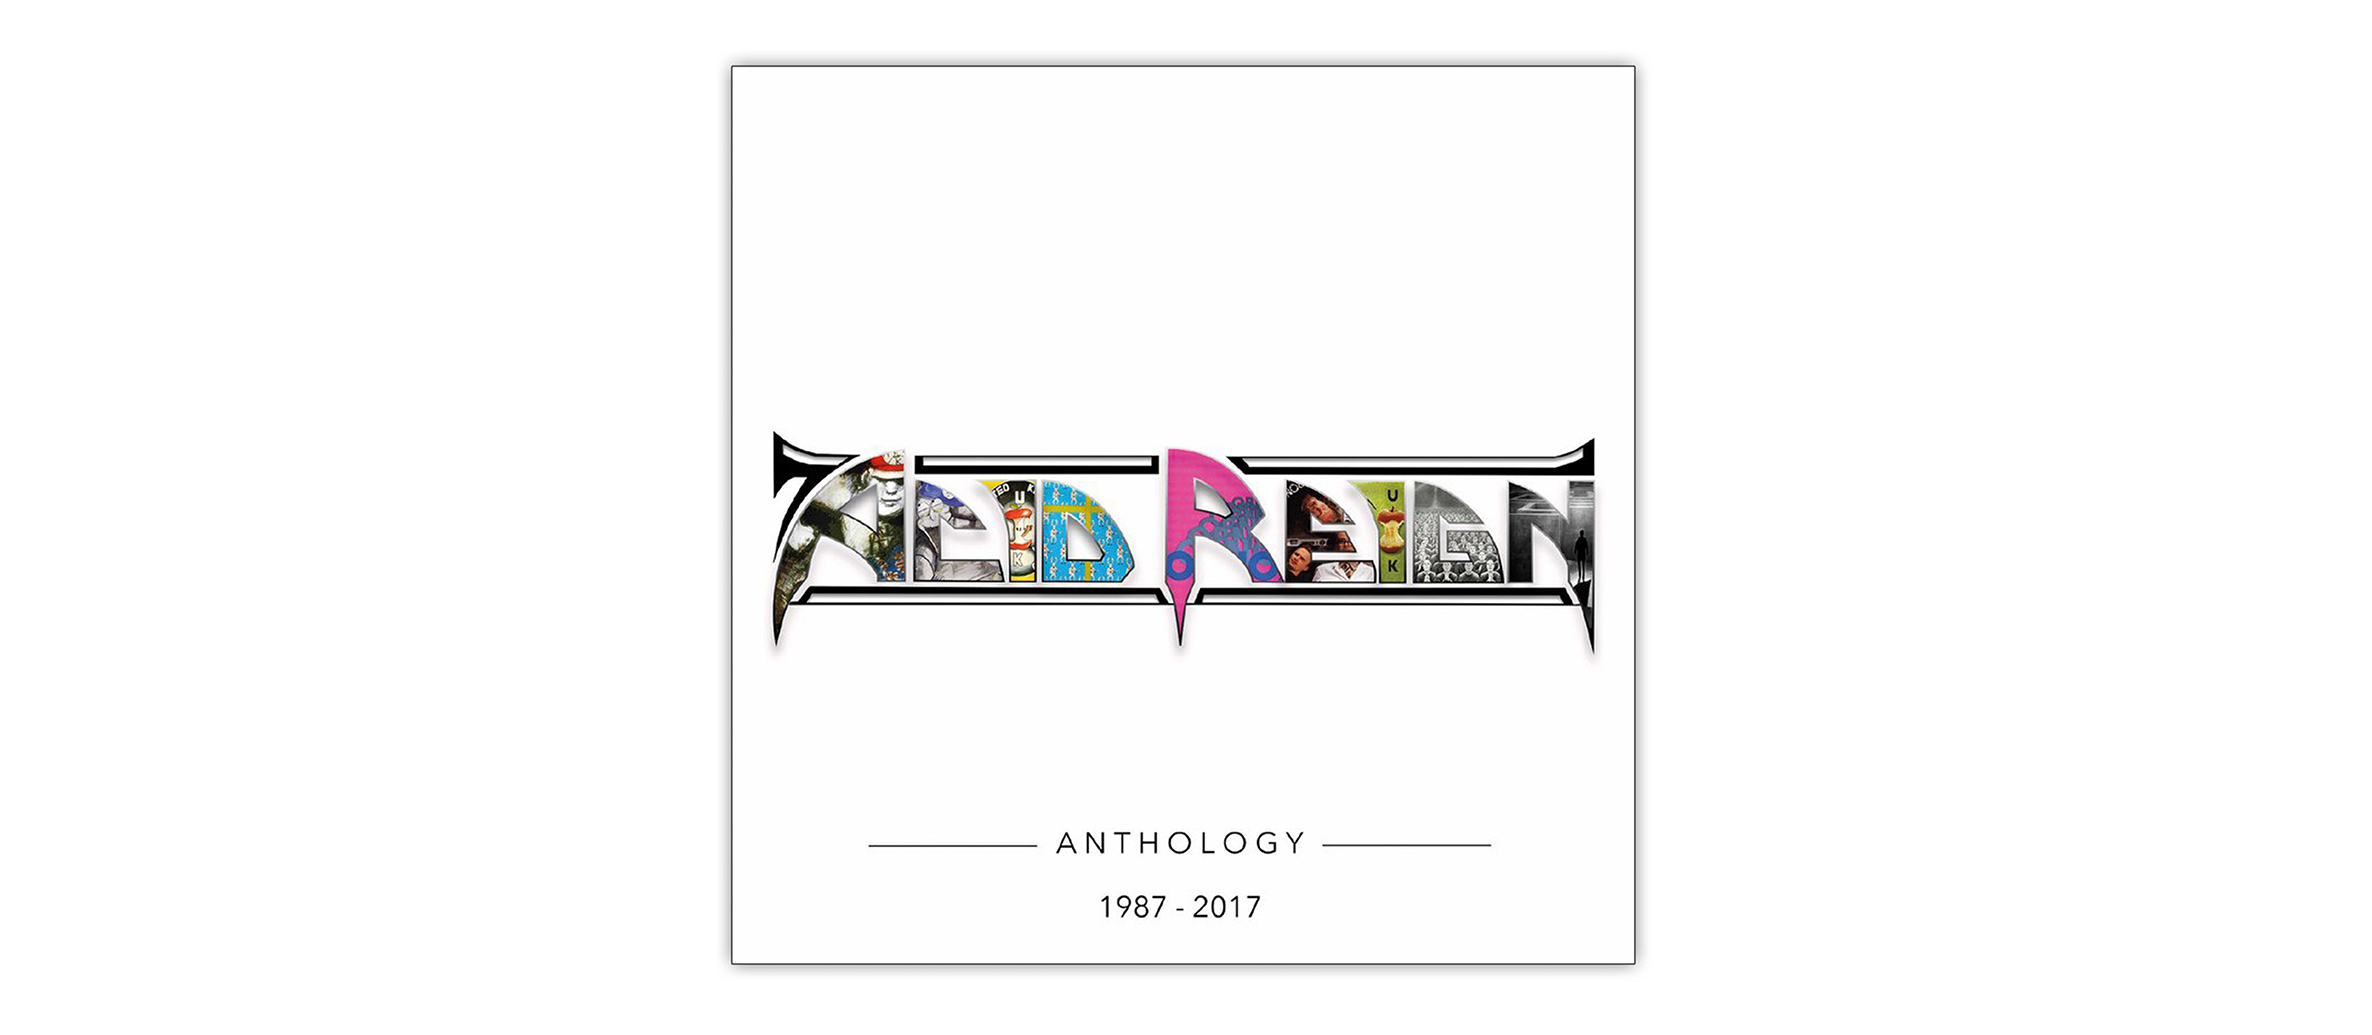 THE BAND WHO BECAME THEMSELVES – Howard 'H' Smith talks about Acid Reign's new 'Anthology 1987 – 2017' CD set